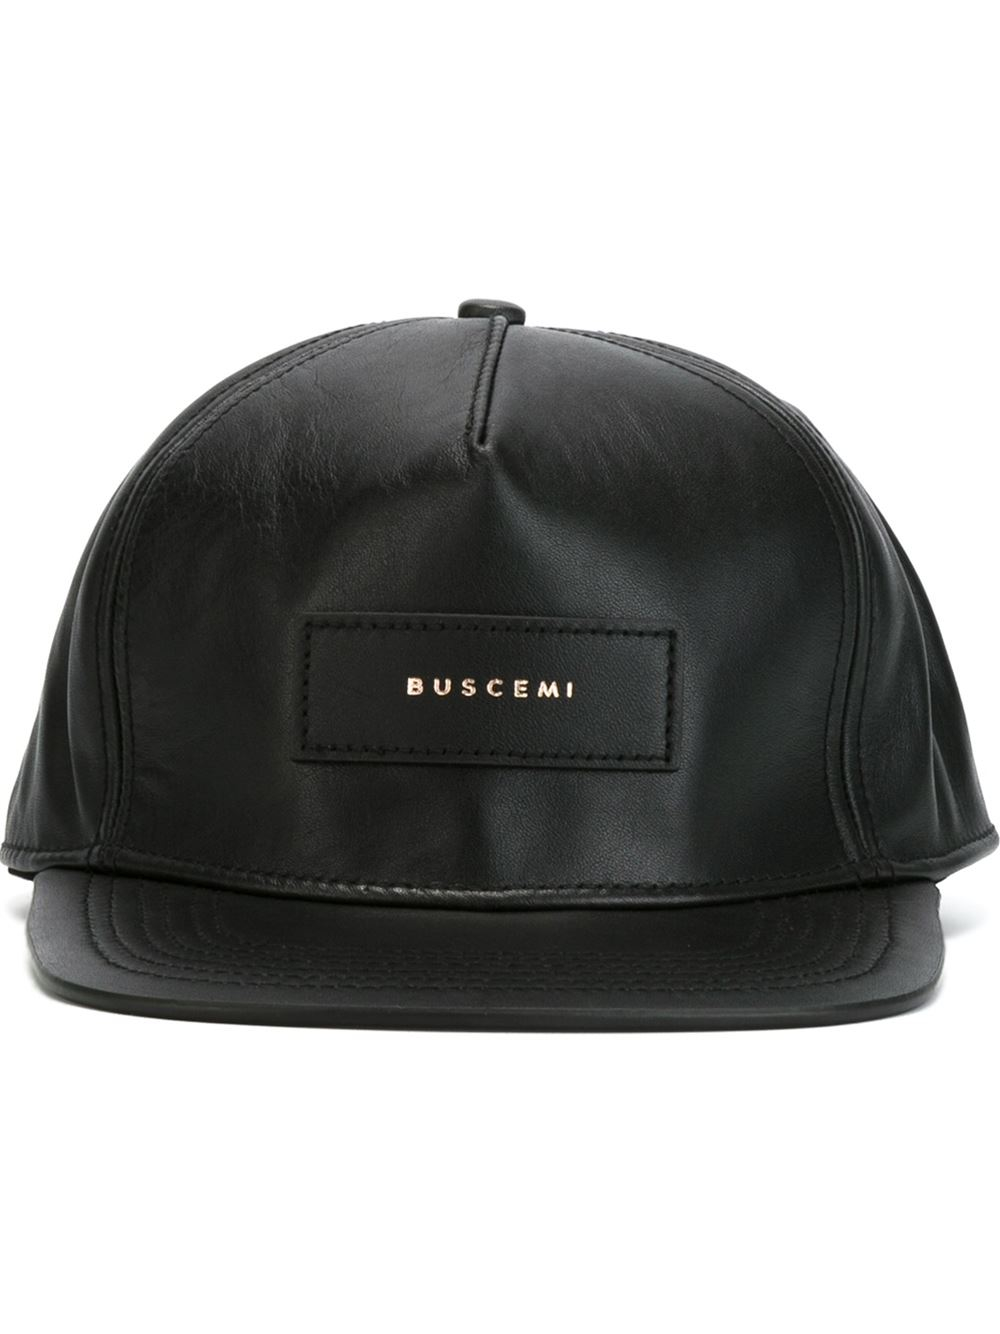 0e3a5921309 Gallery. Previously sold at  Farfetch · Women s Baseball Caps Women s  Leather ...